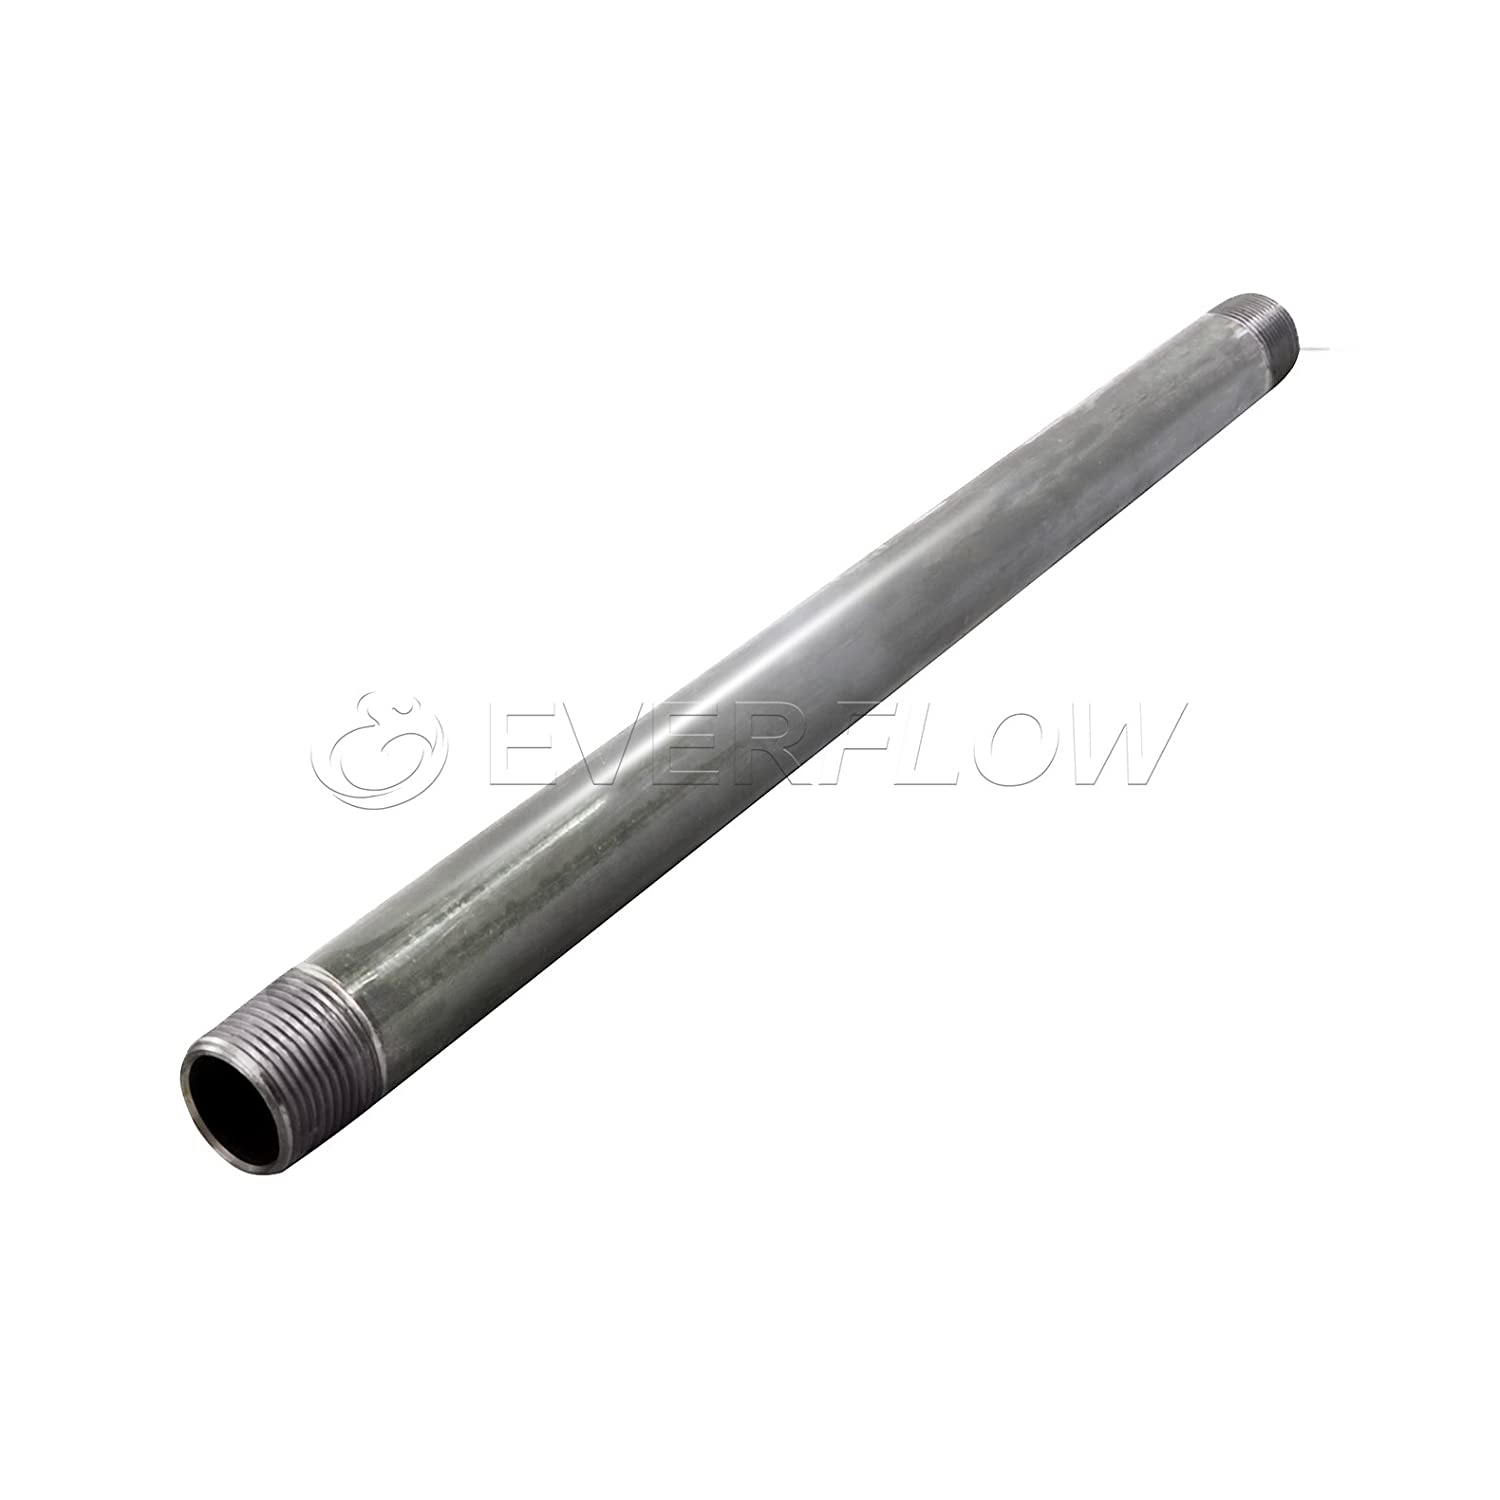 Everflow Supplies PCGL1548 48 Long Pre-Cut Galvanized Pipe with 1-1//2 Nominal Size Diameter